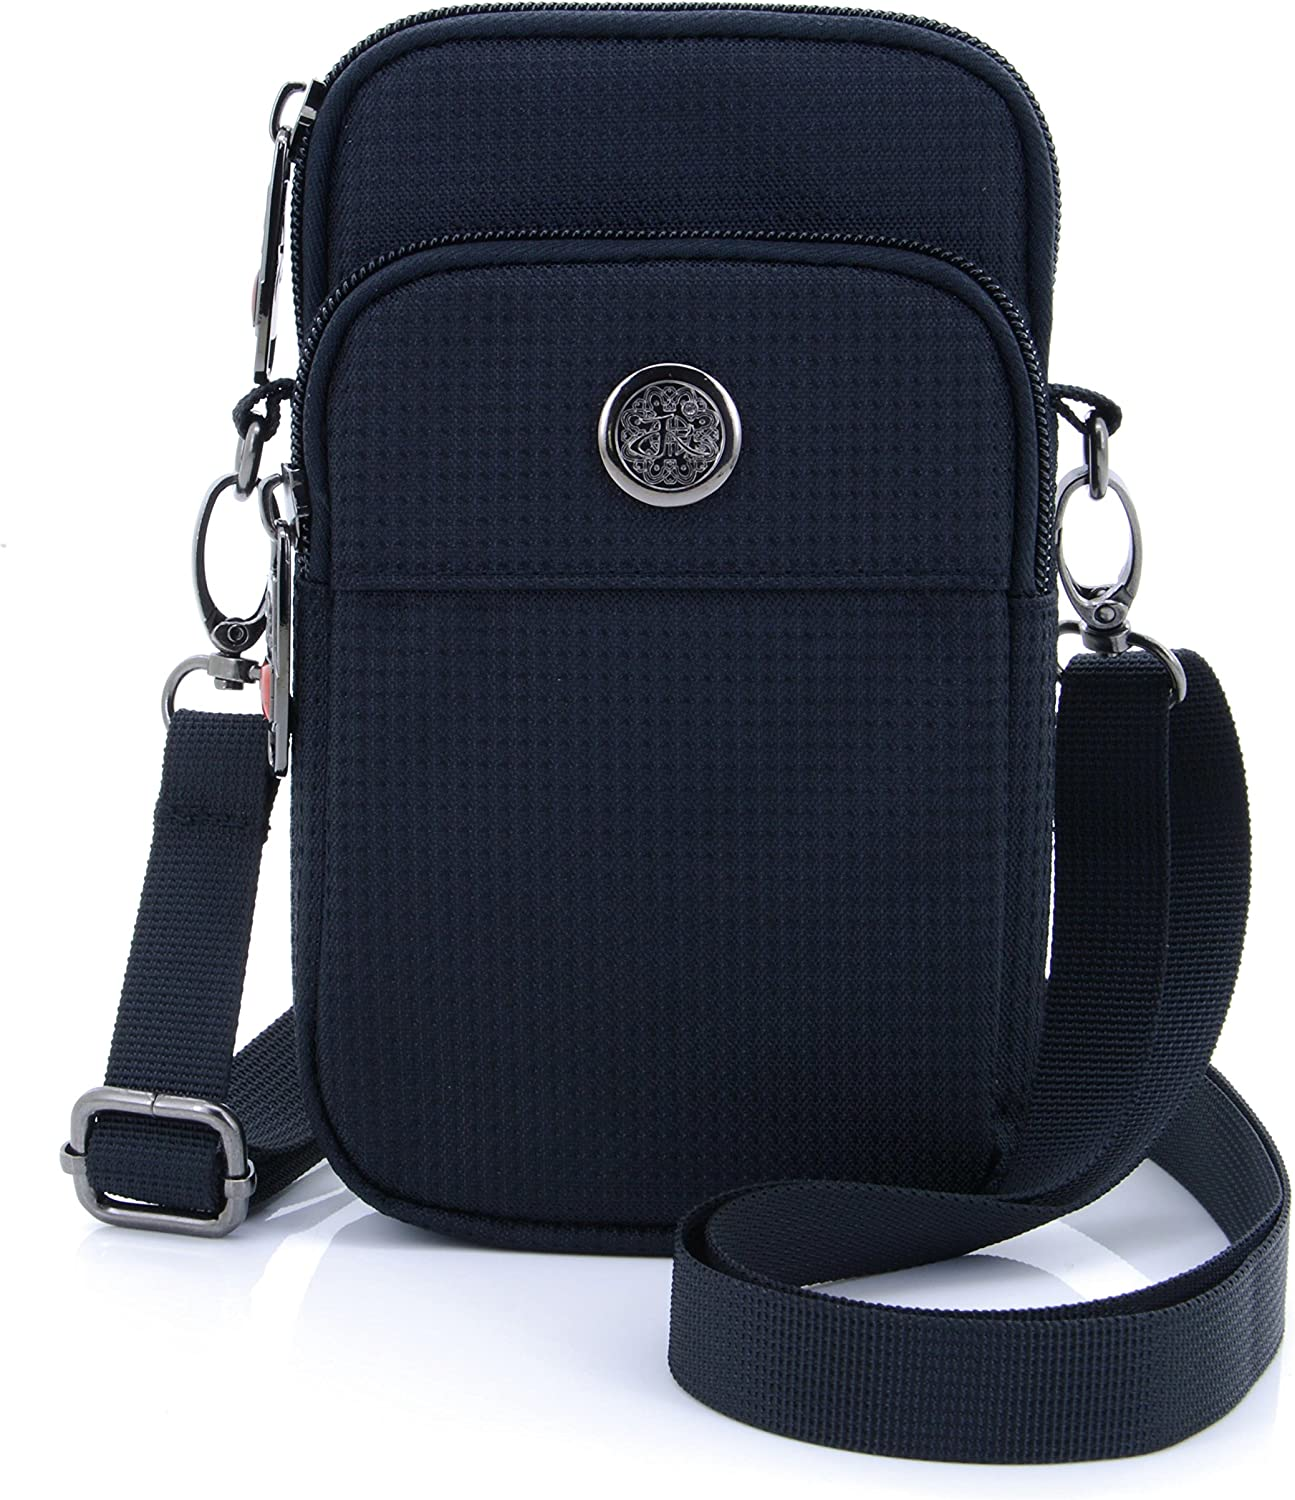 """U-TIMES Casual Water Resistant Oxford Waist Wallet Bag 6"""" Crossbody Shoulder Phone Pouch(Black)"""